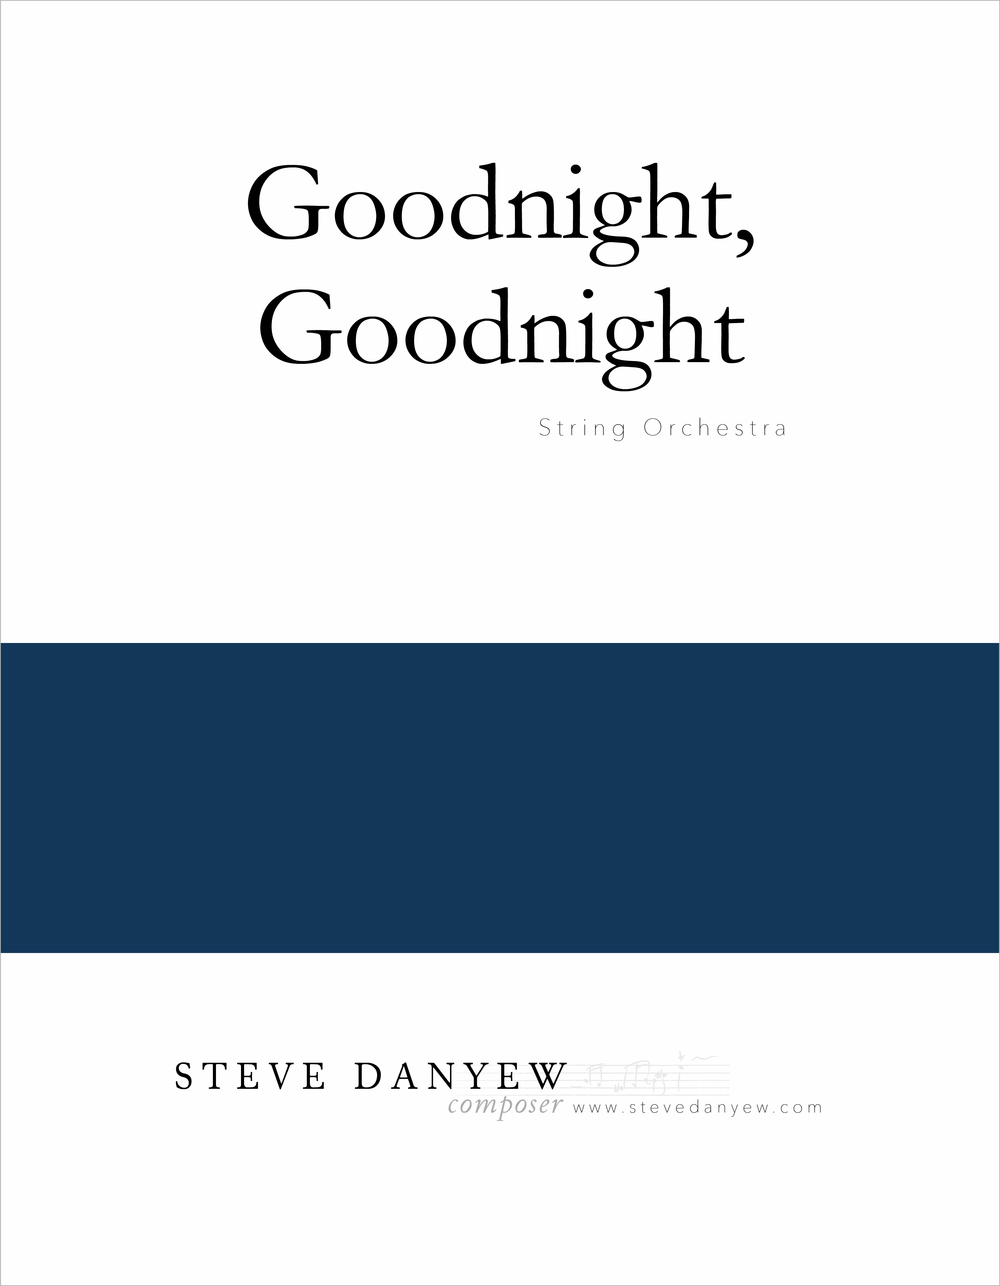 Steve Danyew_Goodnight Goodnight for Strings.png